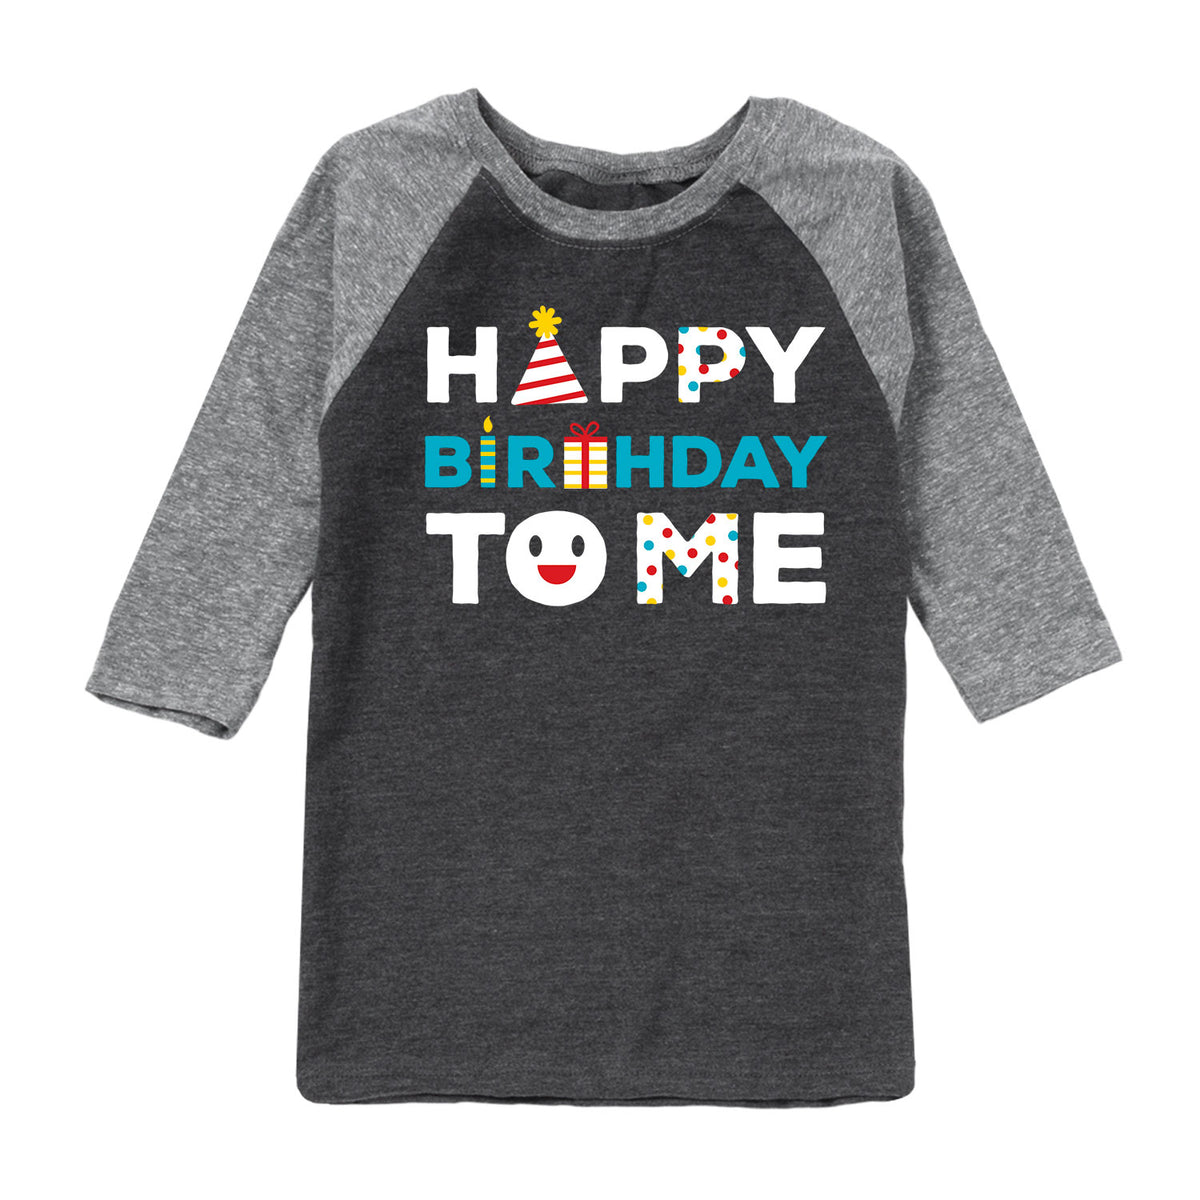 Happy Birthday to Me - Youth & Toddler Raglan